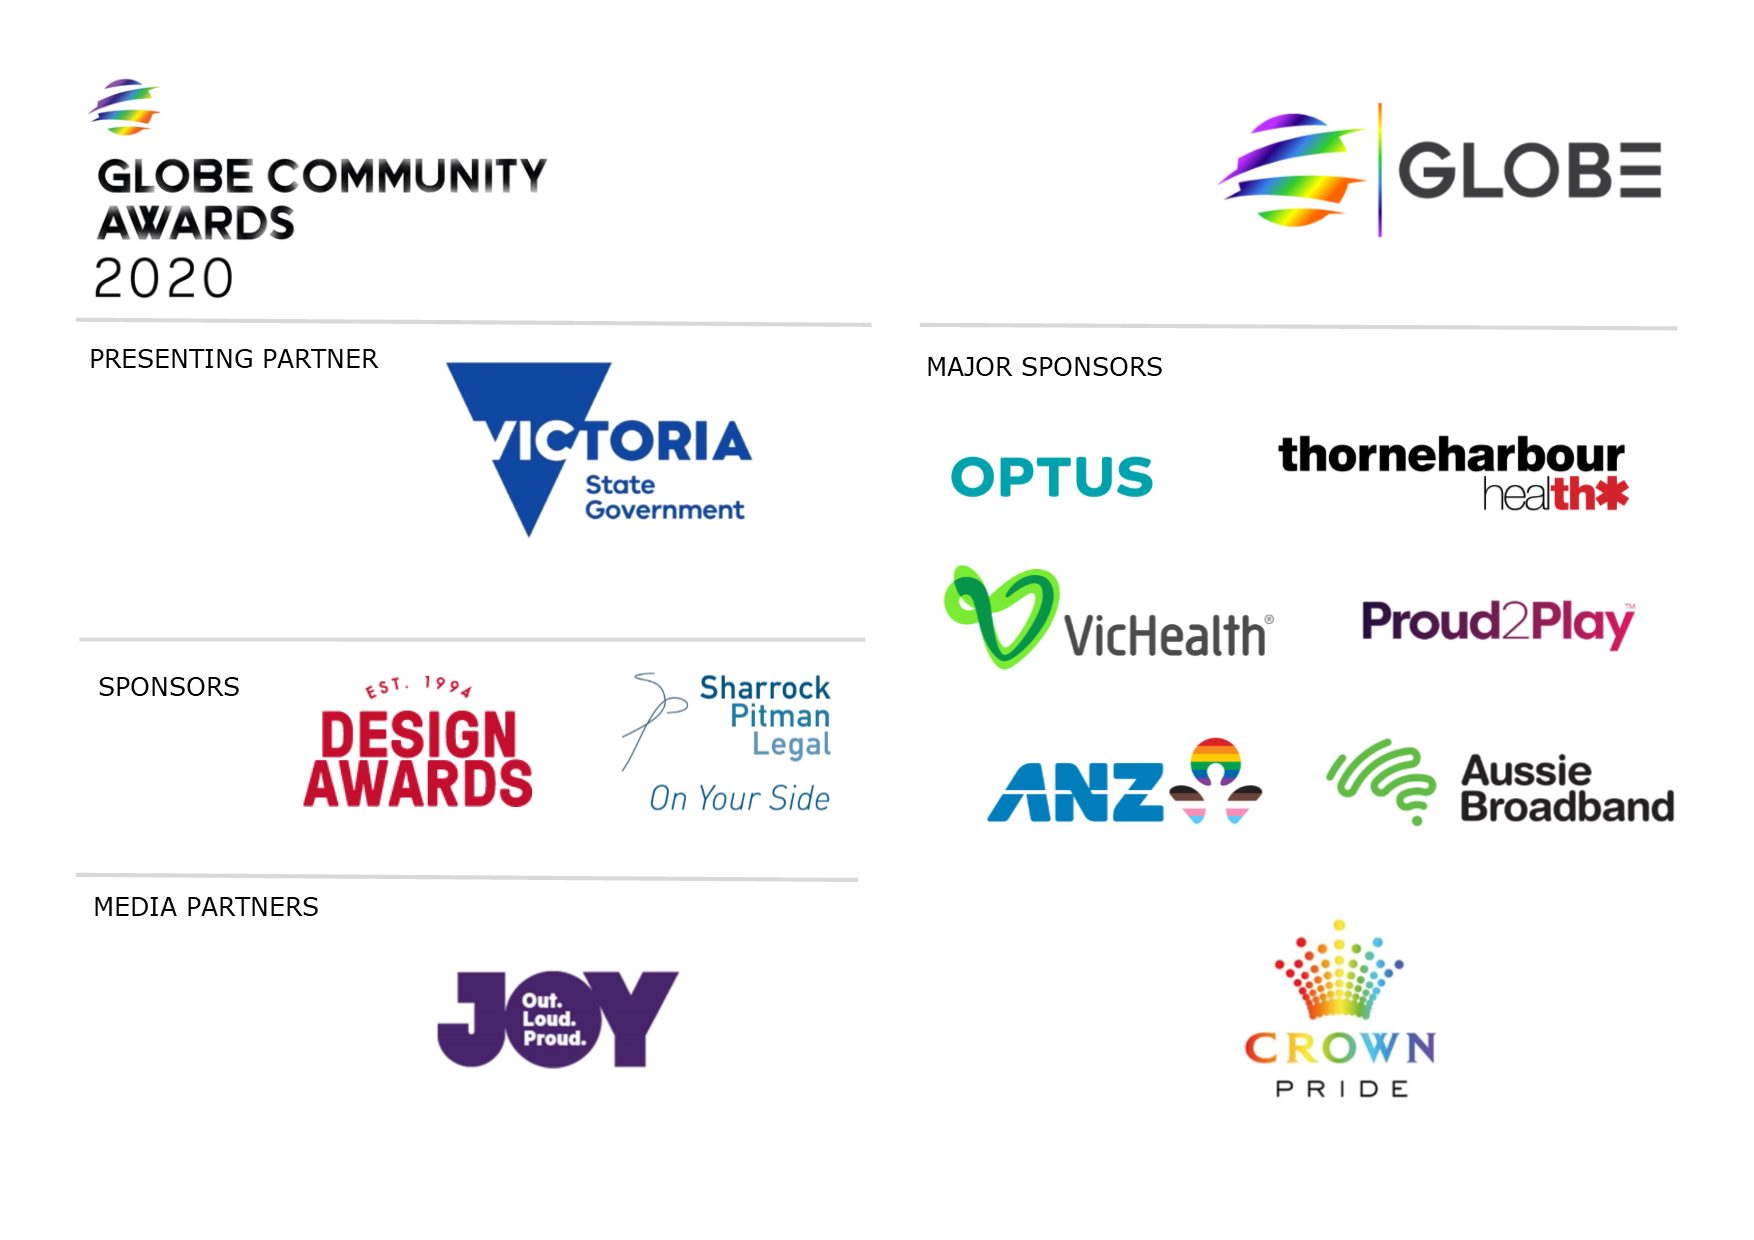 On behalf of everyone here at GLOBE we wanted to express a HUGE THANK YOU to the sponsors of the 2020 GLOBE Community Awards! Without the ongoing support of Optus, State Government of Victoria, ANZ Australia, VicHealth, Sharrock Pitman Legal, Crown Melbourne, Thorne Harbour Health, Aussie Broadband, Proud 2 Play, JOY 94.9, and Design Awards the Community Awards would not be what they are!